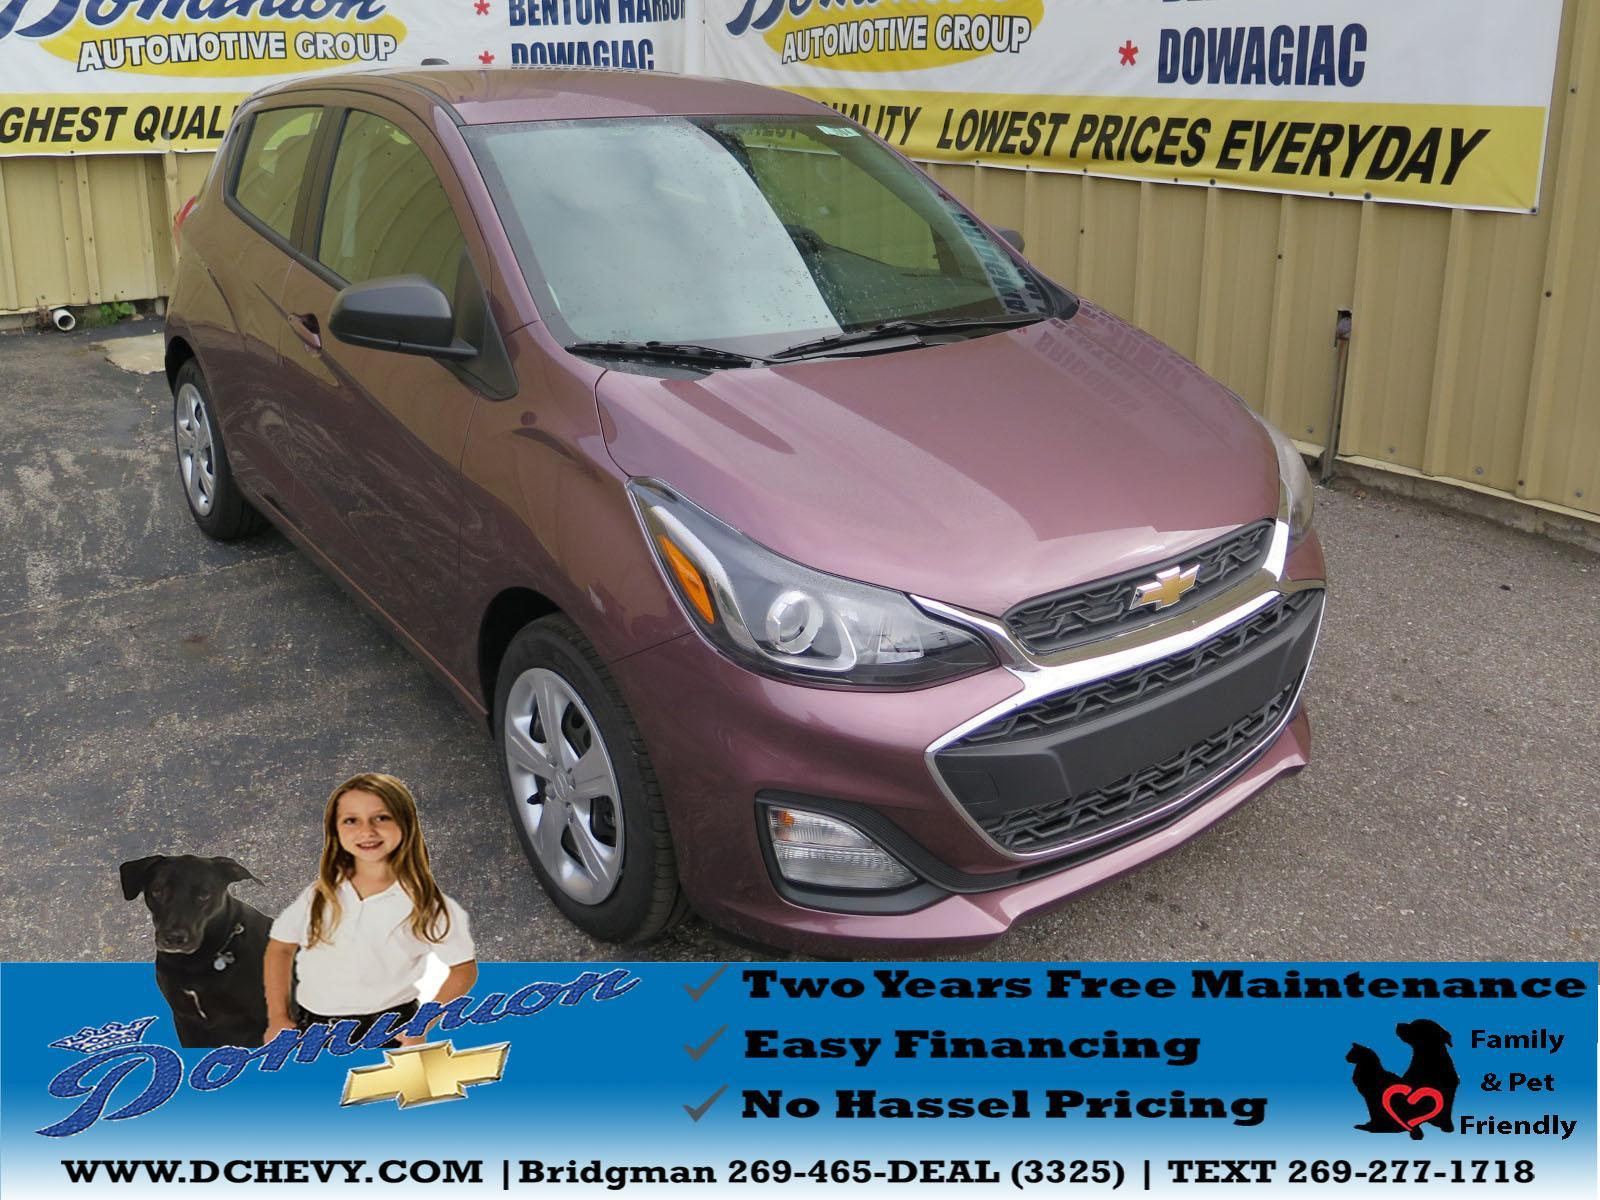 59 New Chevrolet Cars Suvs In Stock Dominion Chevrolet